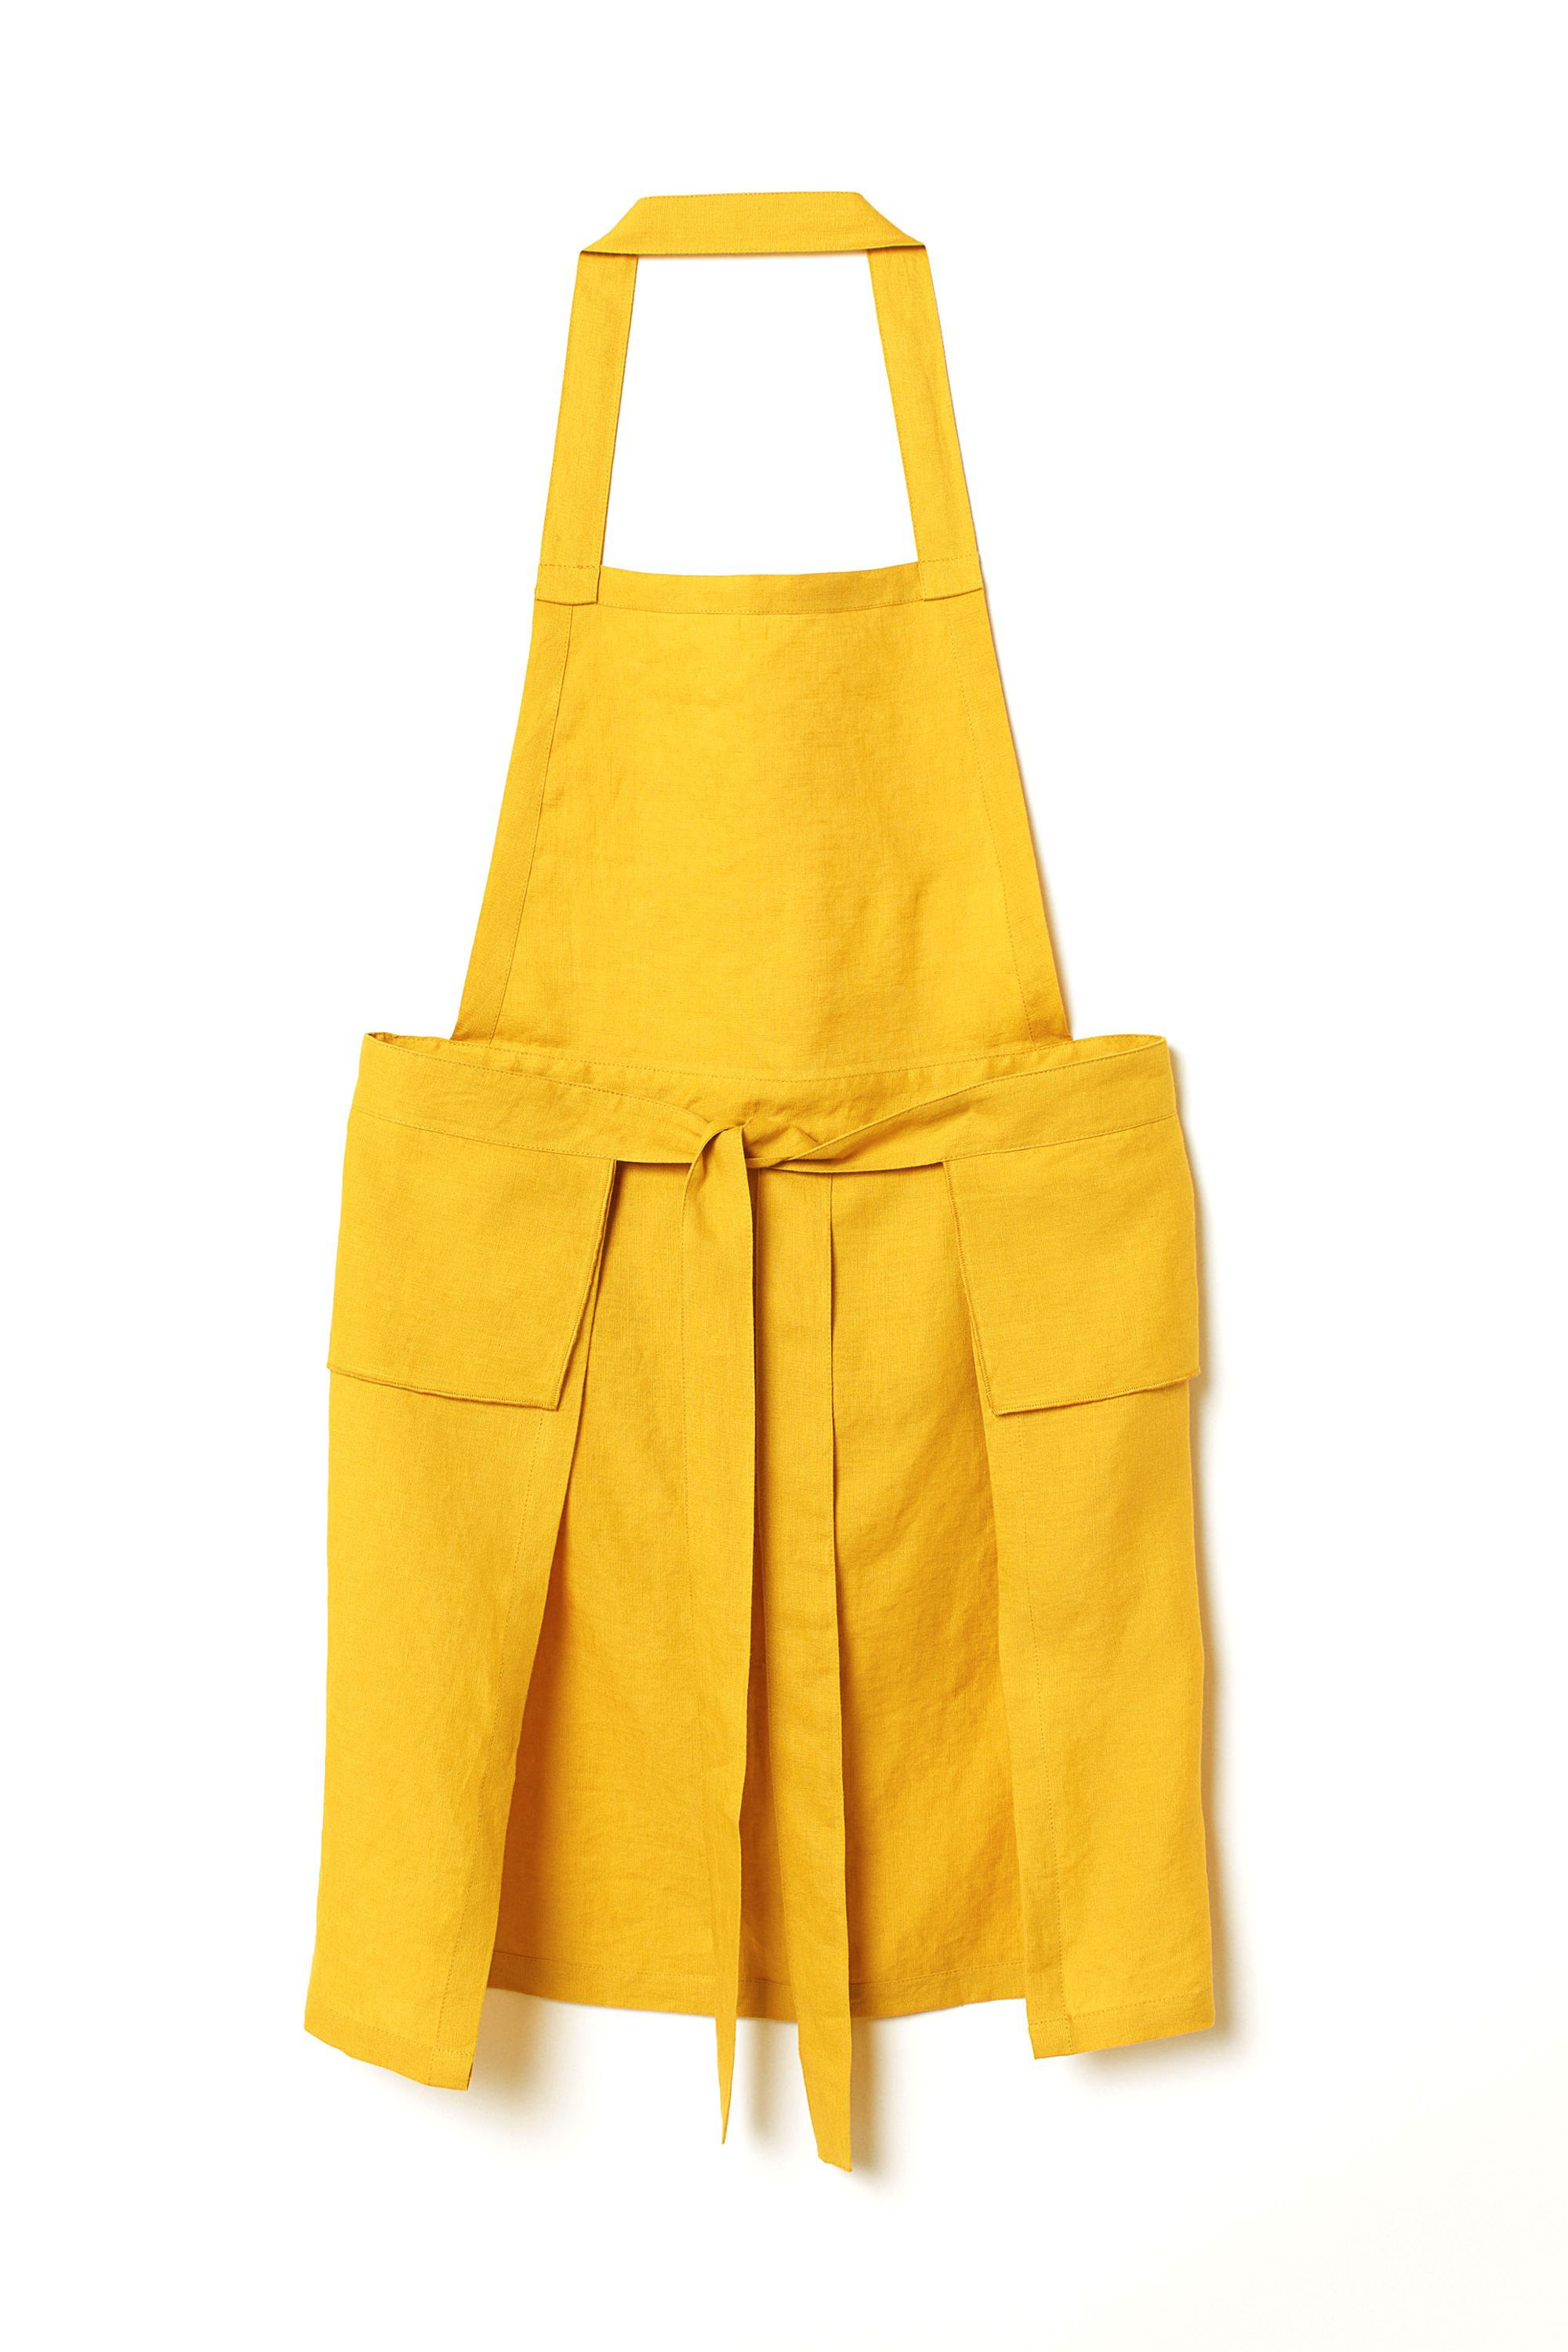 Linen Apron H&M hm.com $24.99 SHOP NOW Your mom is about to get way cuter.